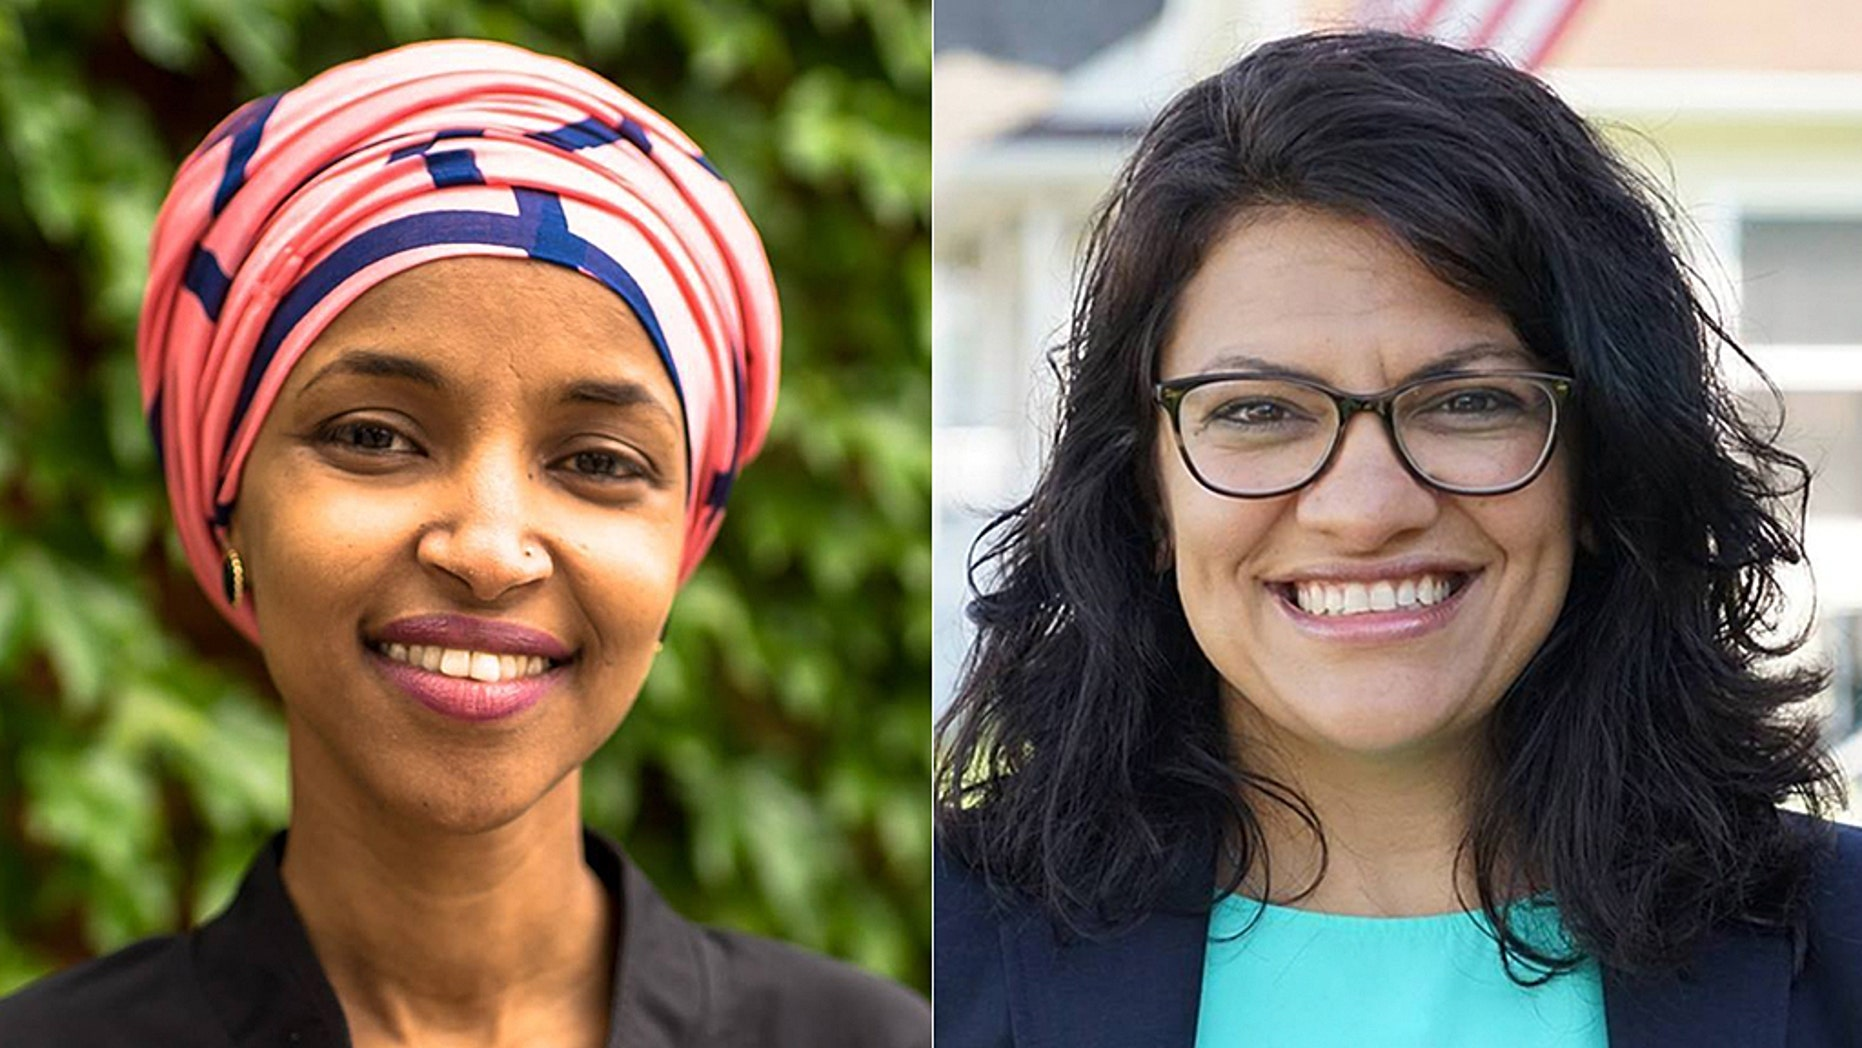 A record number of women are running for public office this year, and several are poised to make history. Ilhan Omar of Minnesota (left) and Rashida Tlaib of Michigan (right) are slated to become the first two Muslim women to serve in Congress.